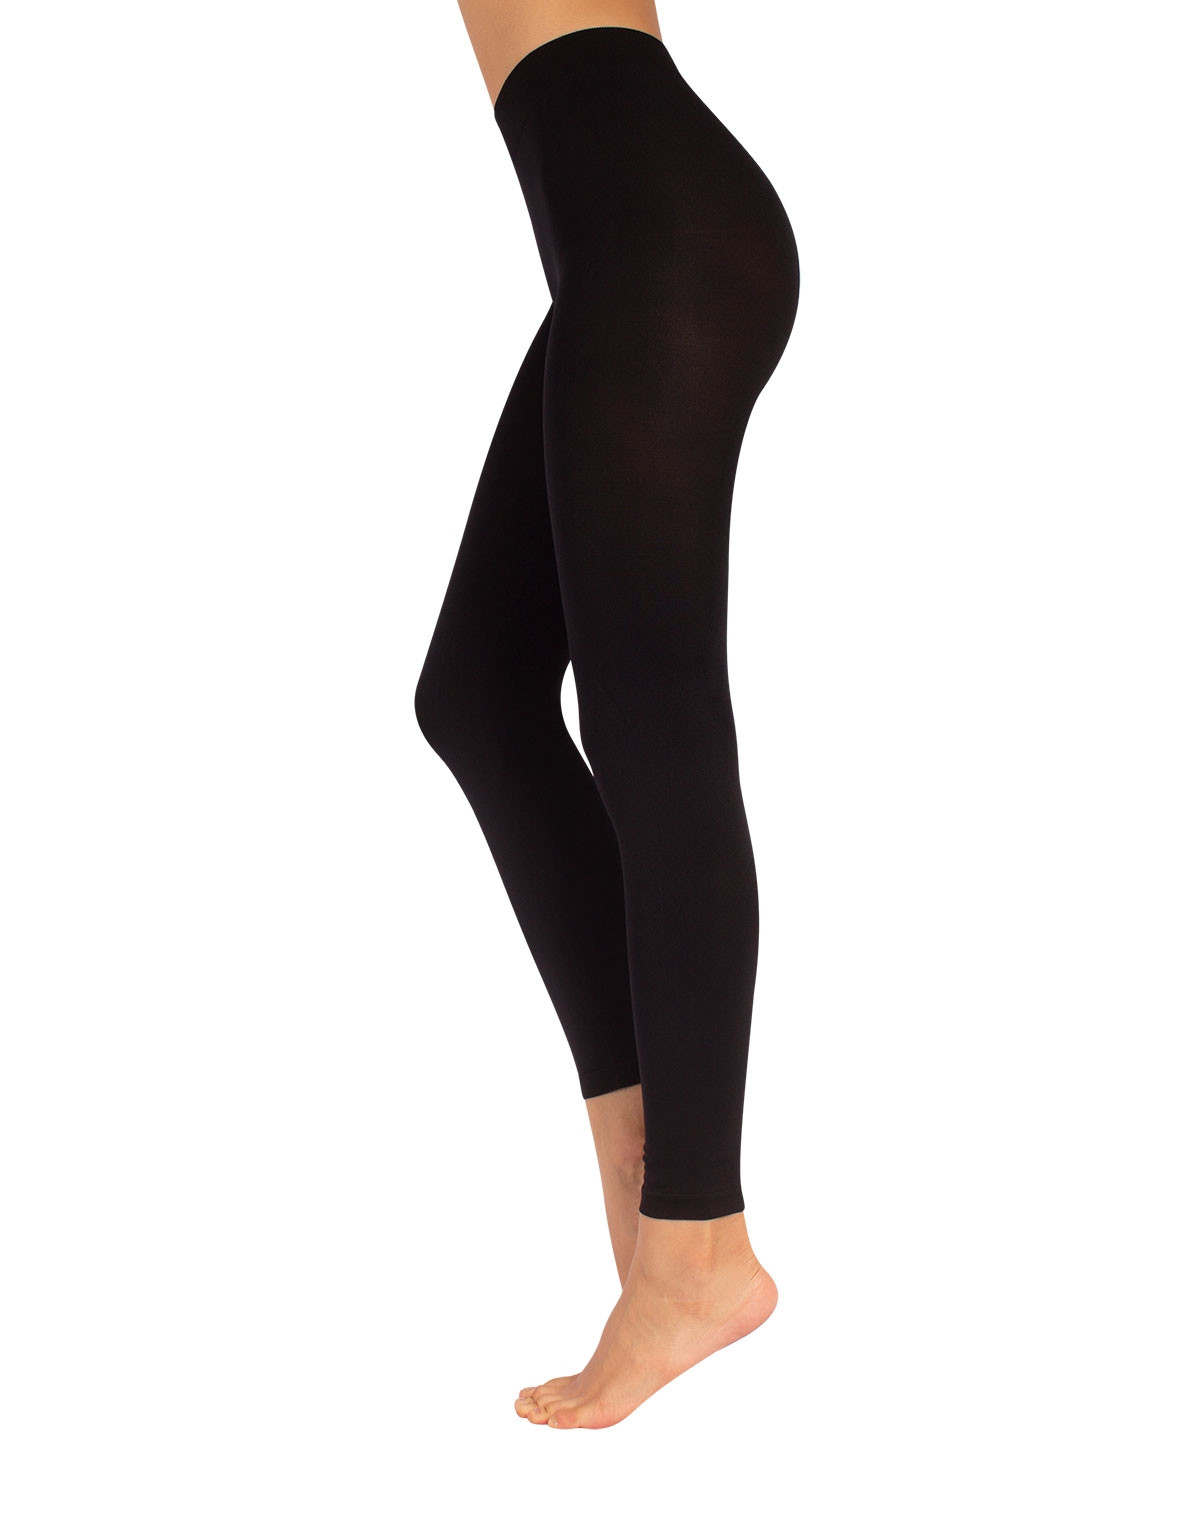 LEGGINGS MICROFIBRA 3D - 200 DEN